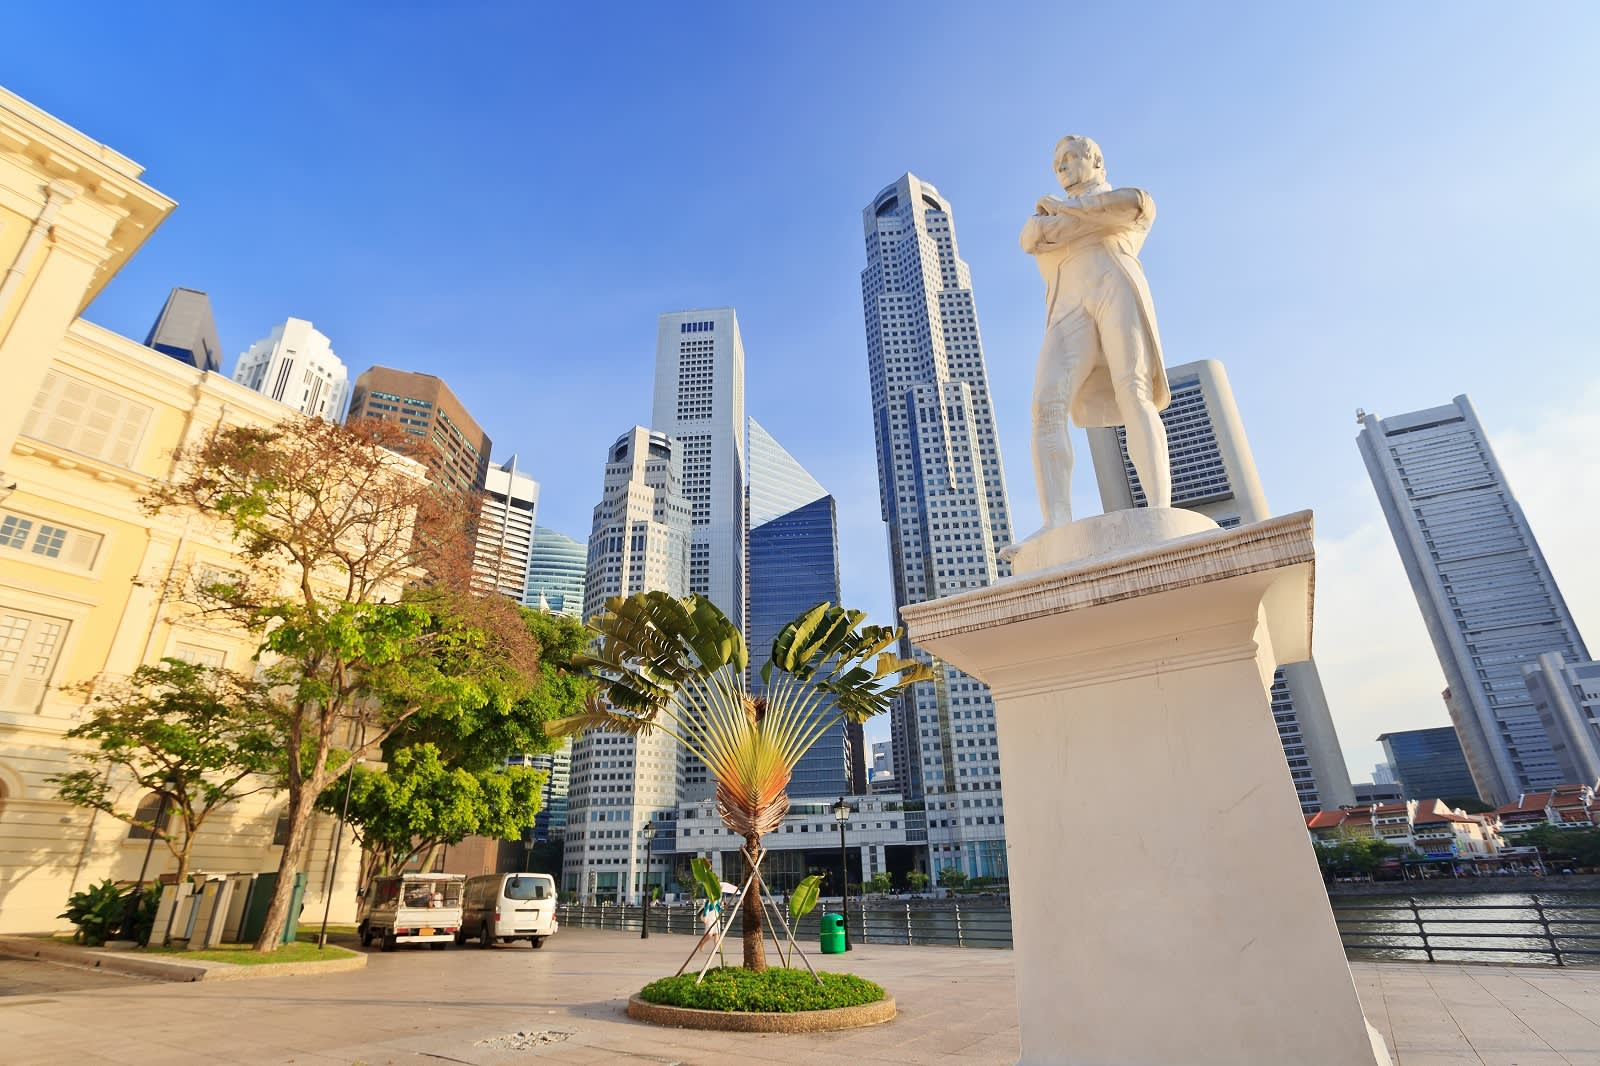 Statue of Sir Stamford Raffles in the heart of the city